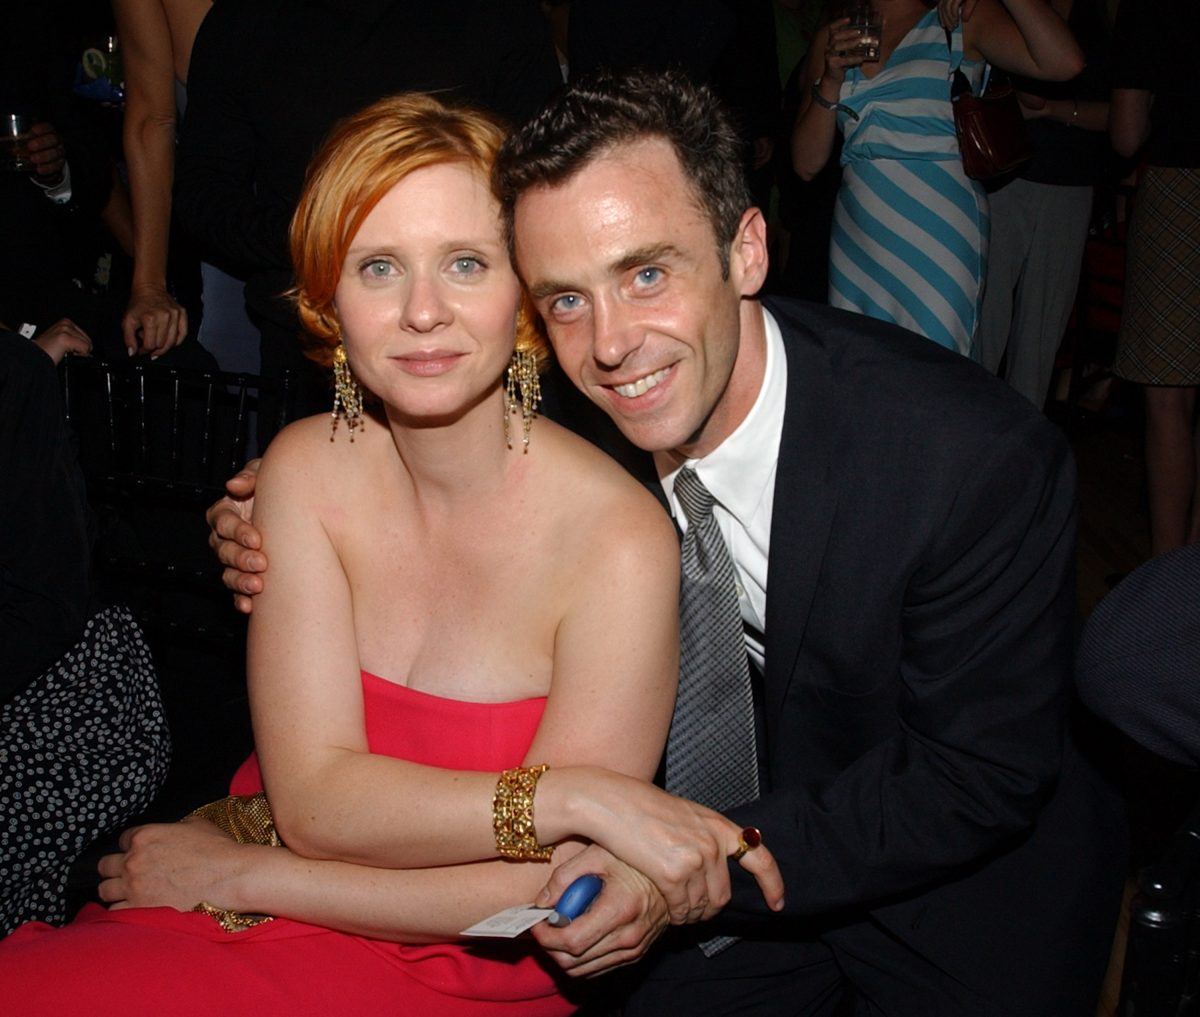 Cynthia Nixon and David Eigenberg together at the season 5 premiere of 'Sex and the City'